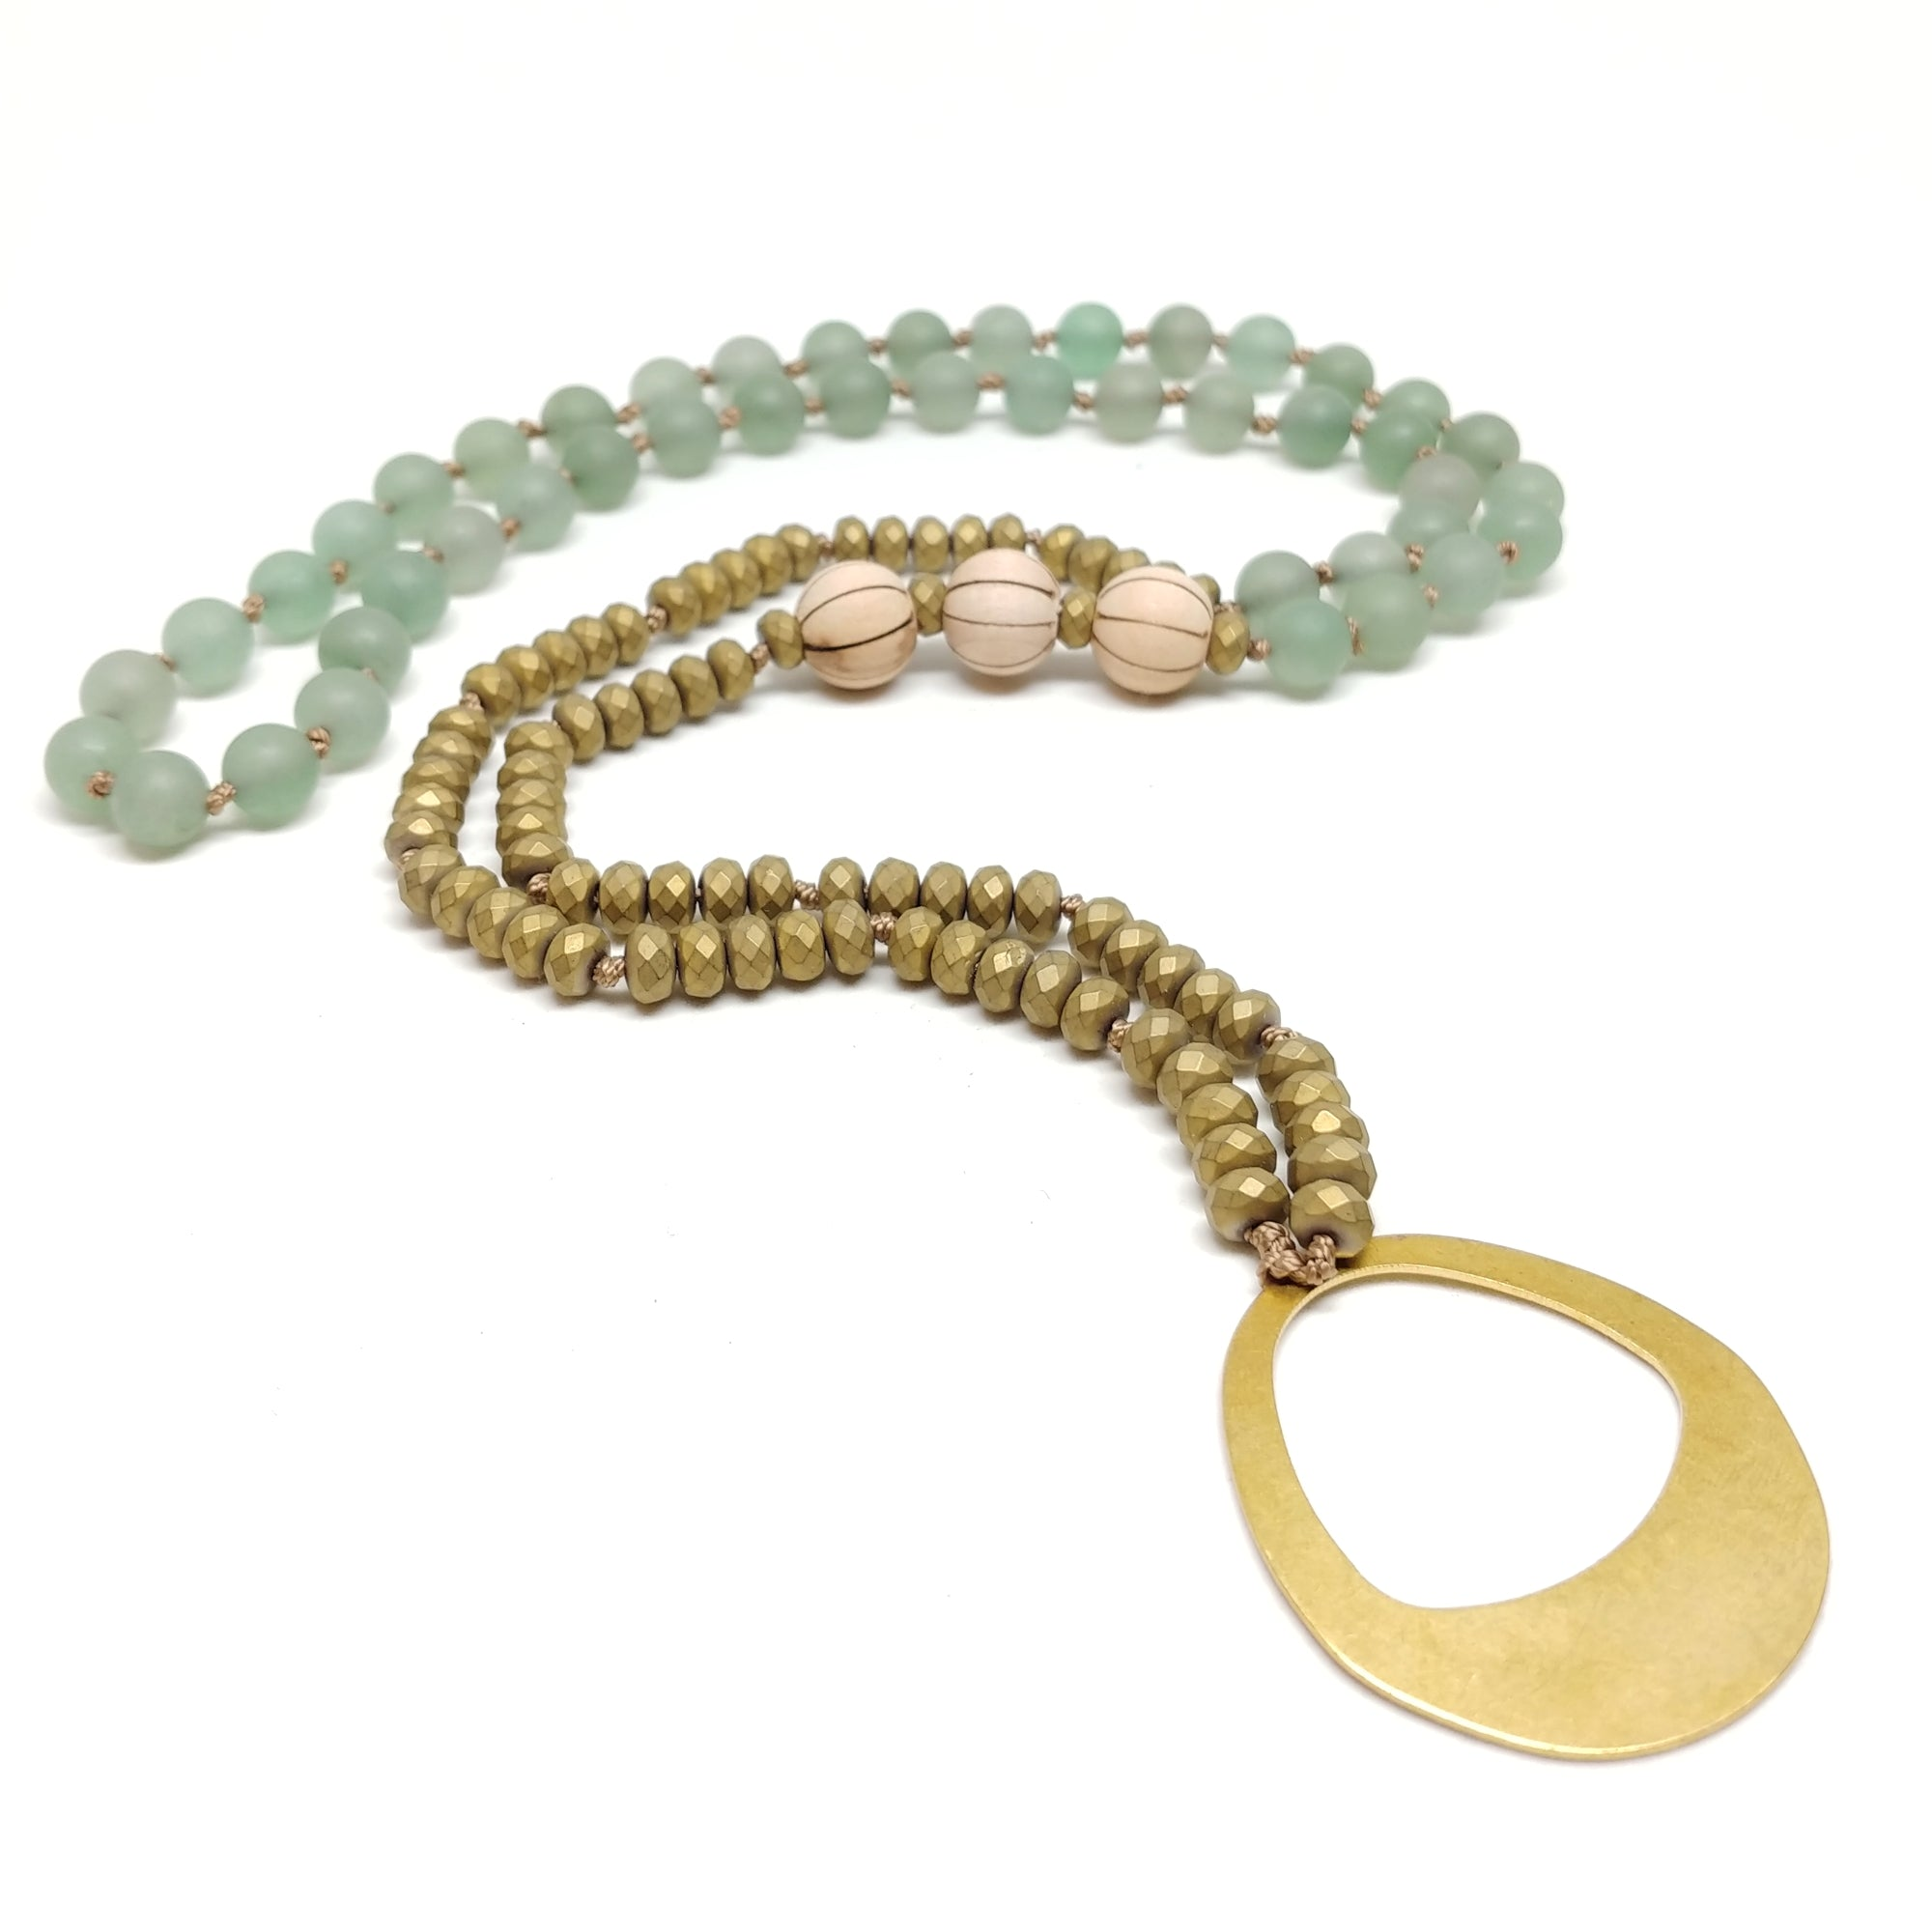 "Palm Canyon Necklace, 33"" mala-style knotted necklace, aventurine, hematite and sandal wood, brass oval pendant"